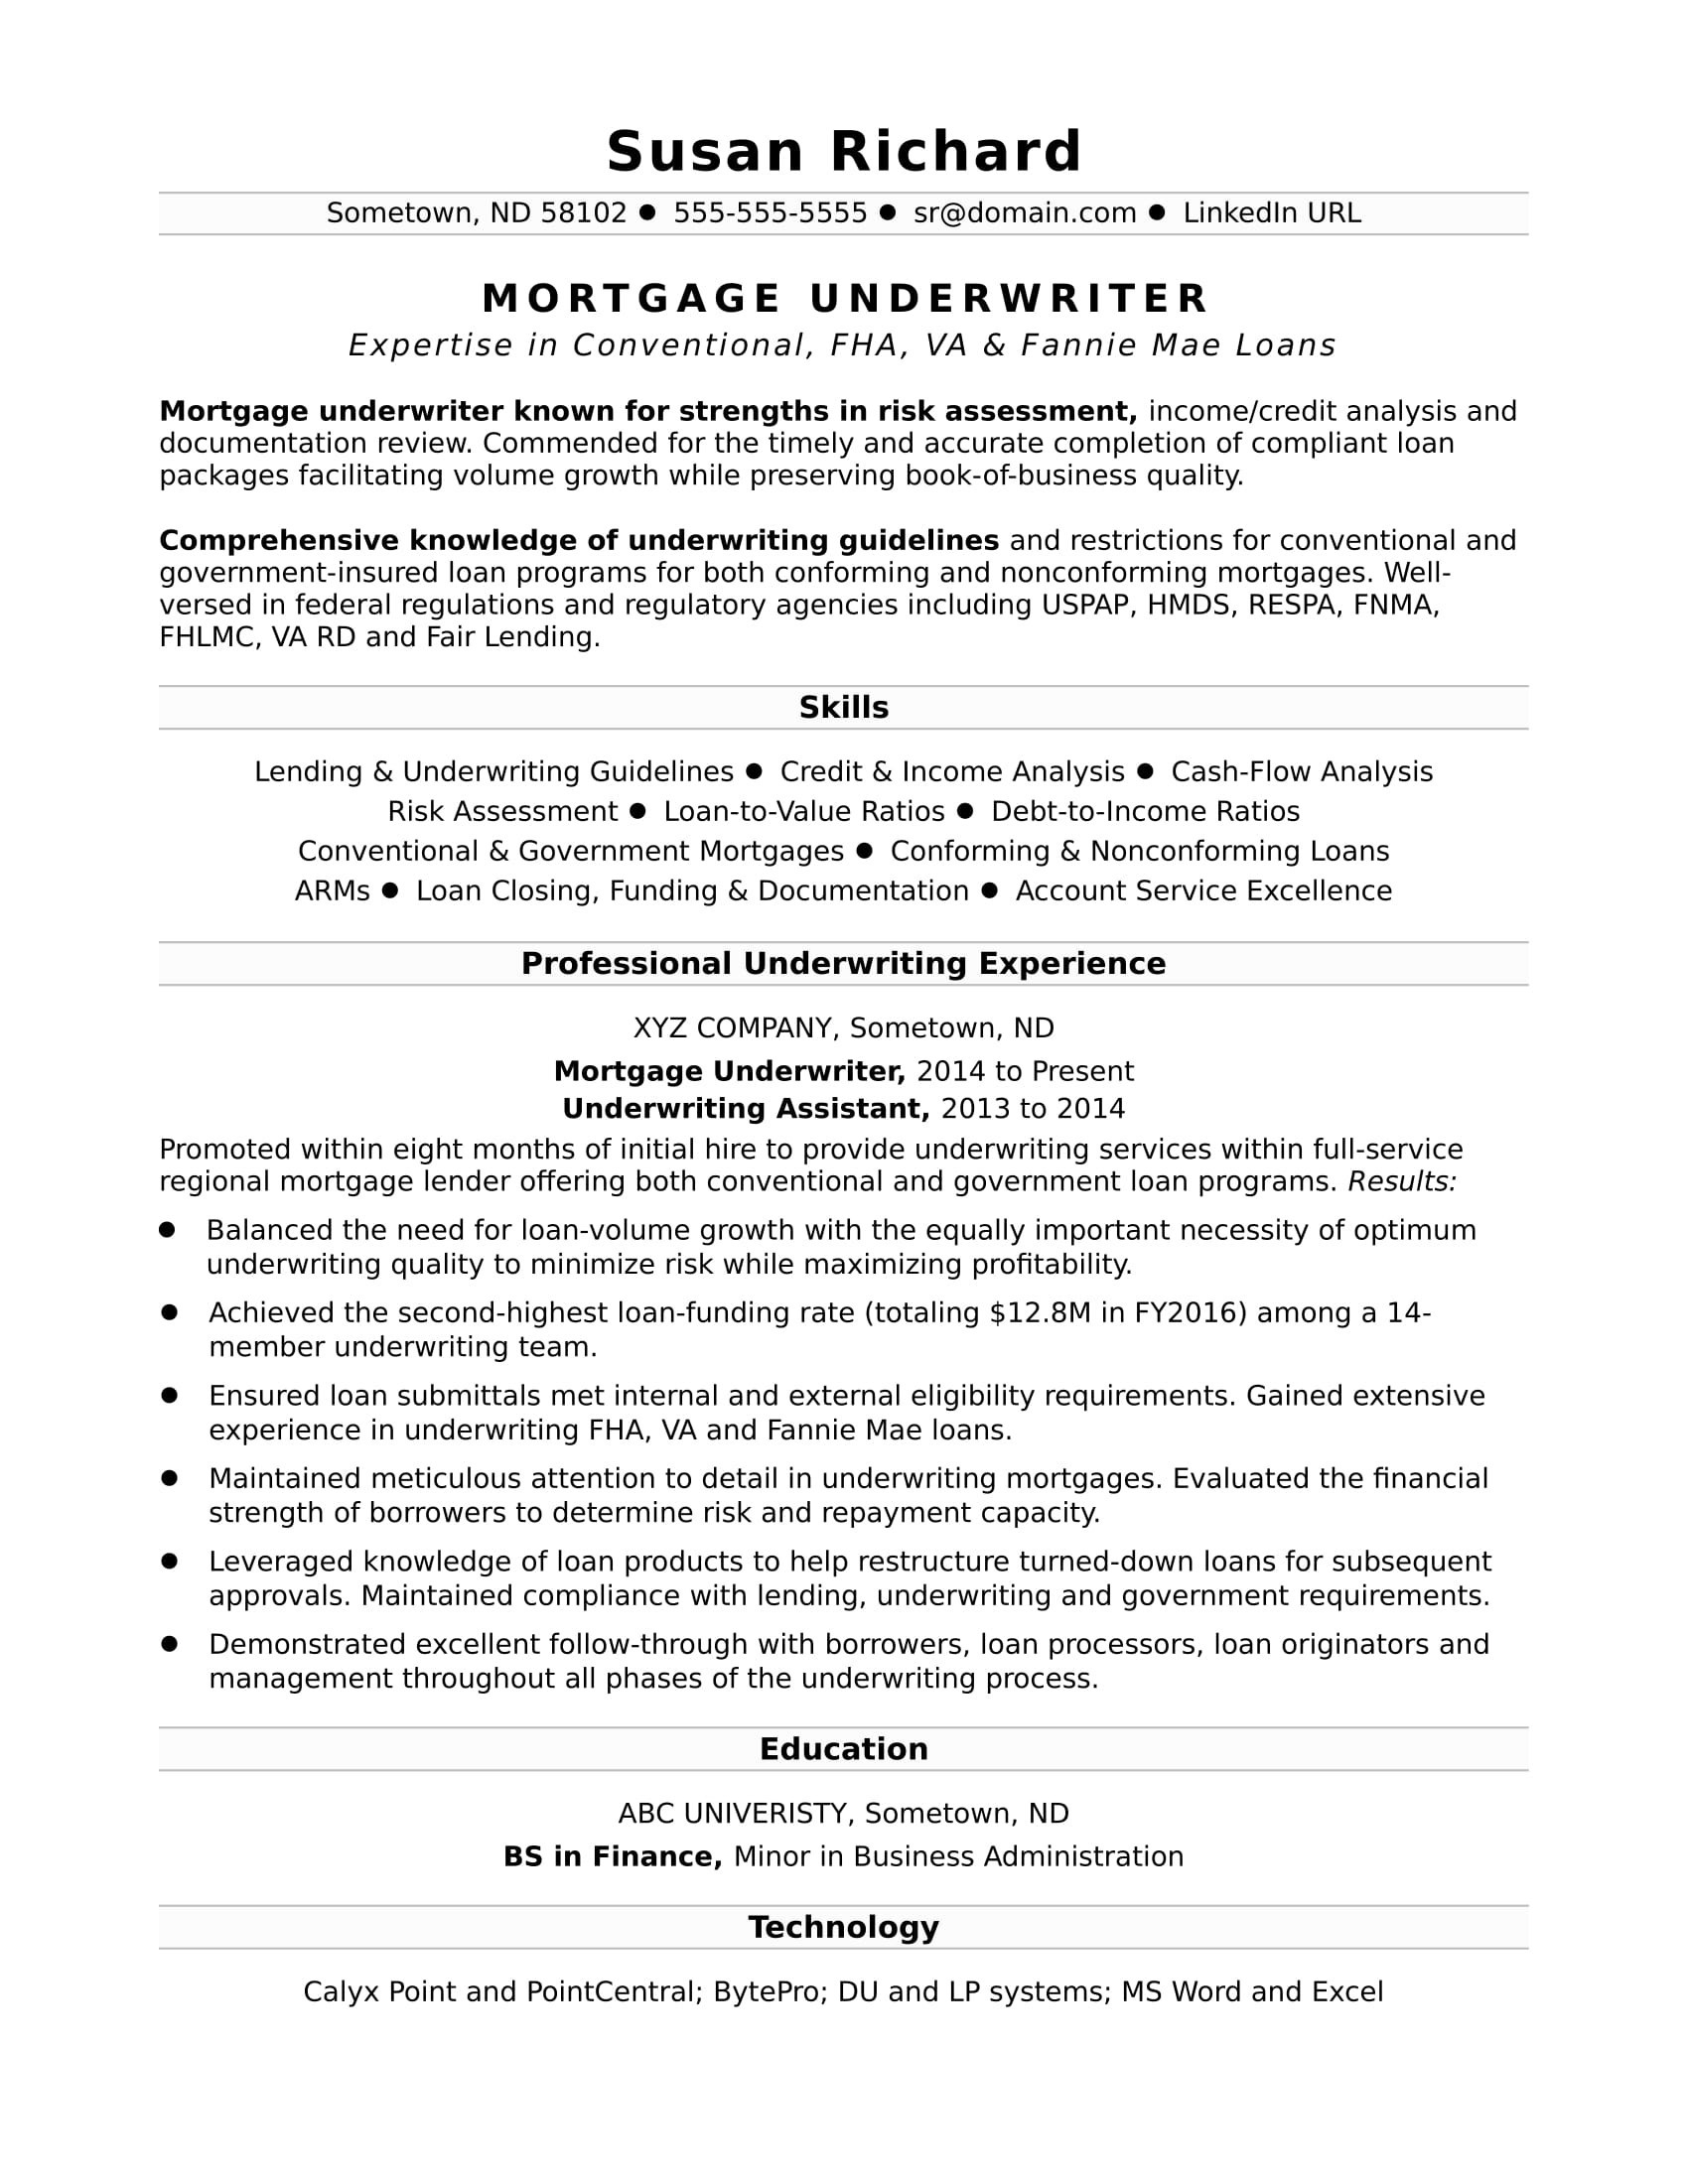 Rfp Award Letter Template - Templates for Small Business Fresh Detailed Resume Template Luxury